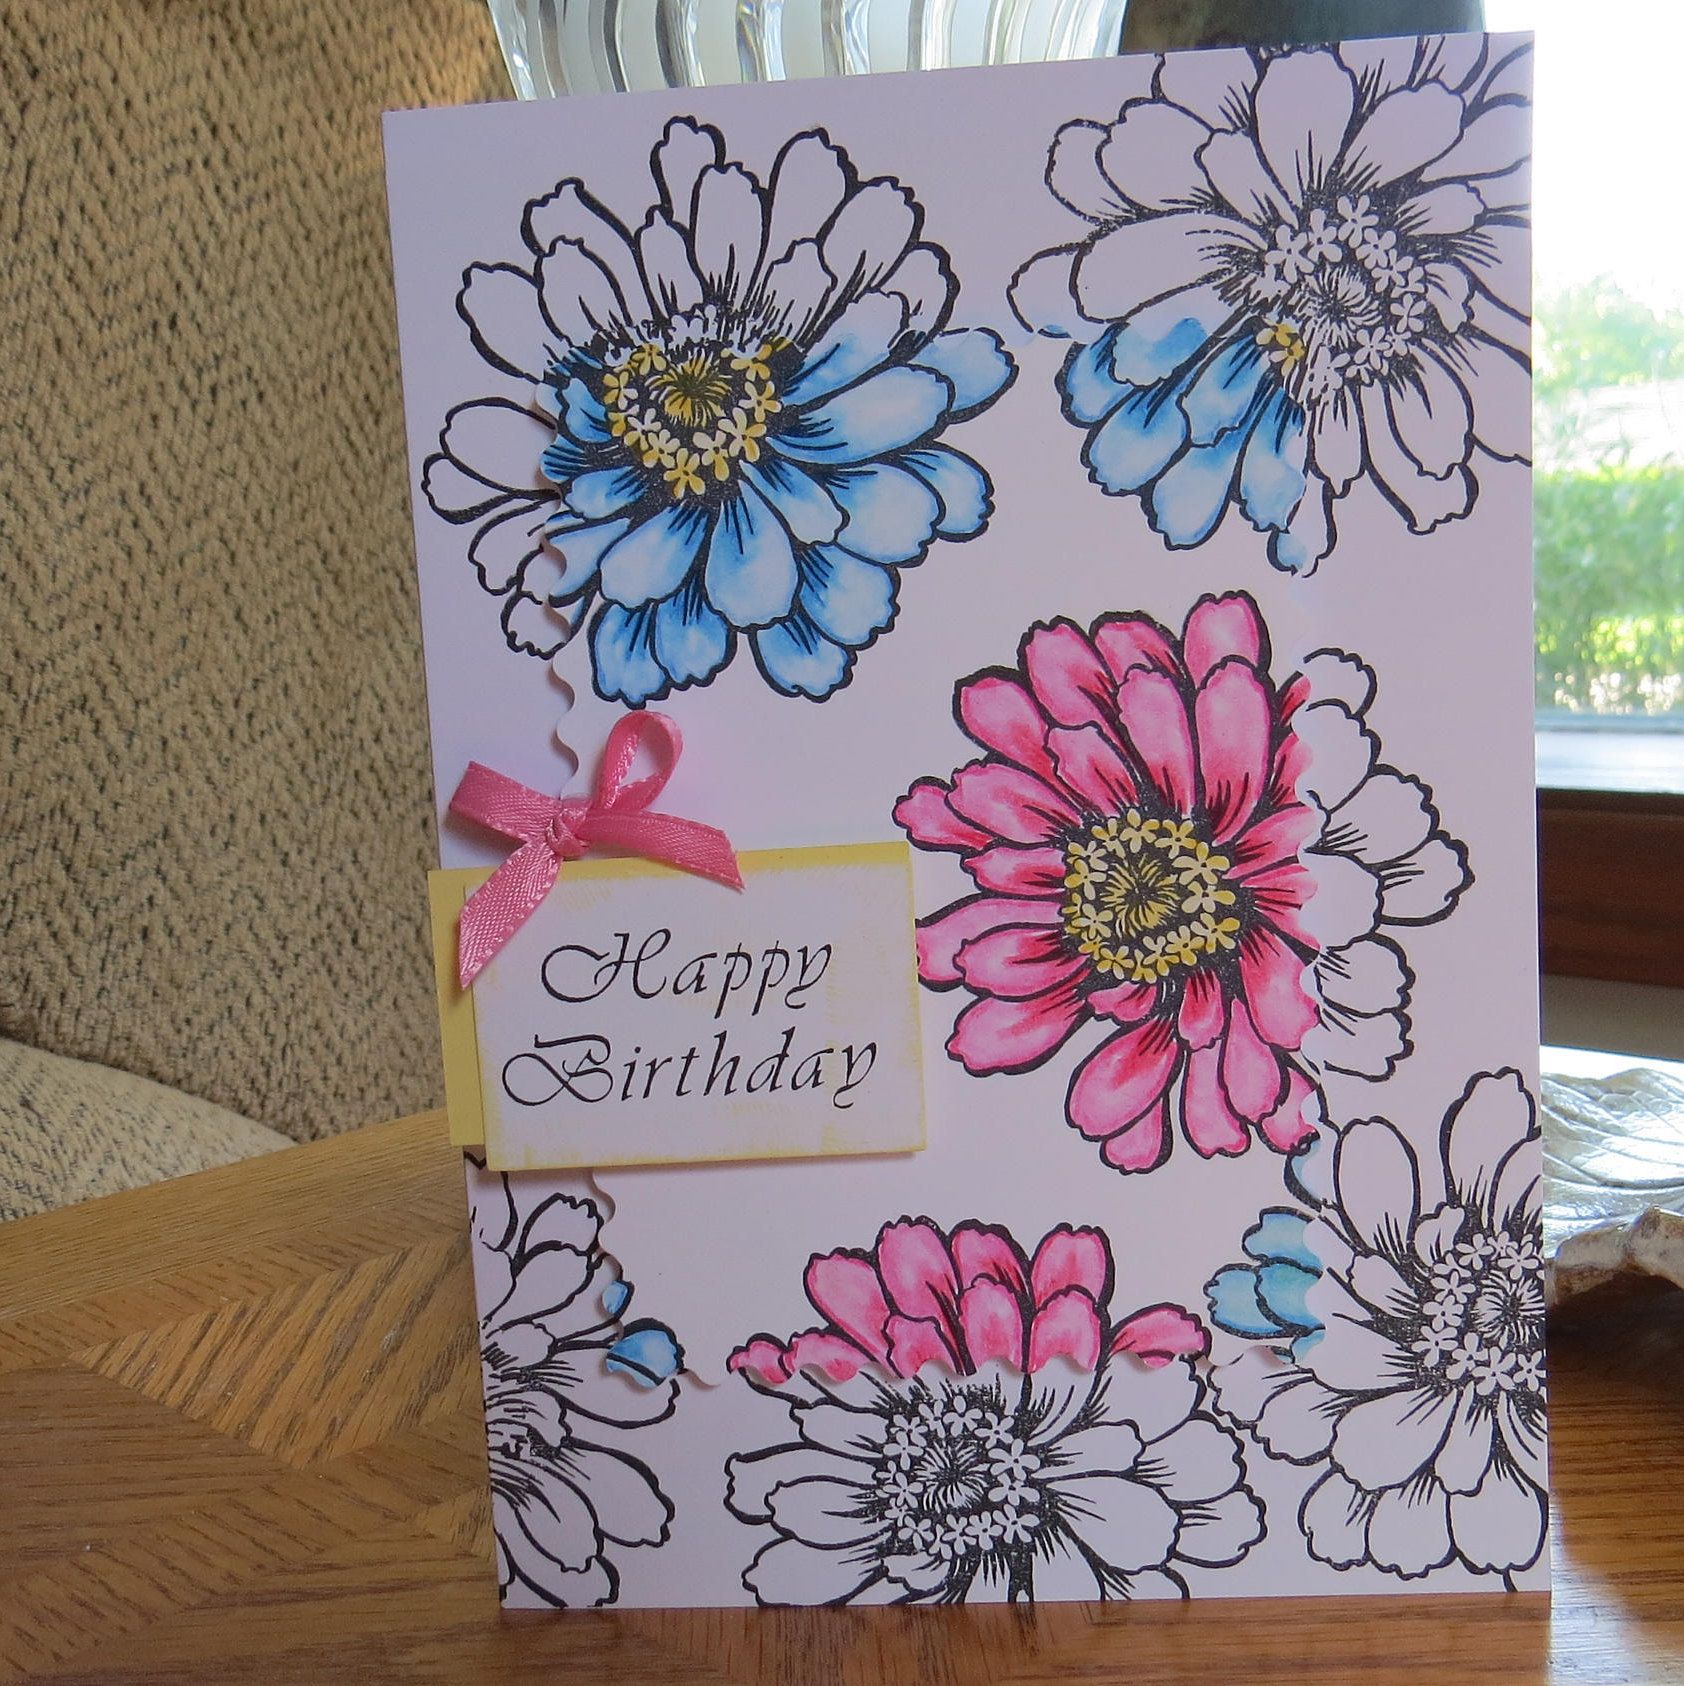 Floral birthday card large 5x7 pink and blue daisy flower card large birthday flower card for her happy birthday surprise card blue and pink happiness izmirmasajfo